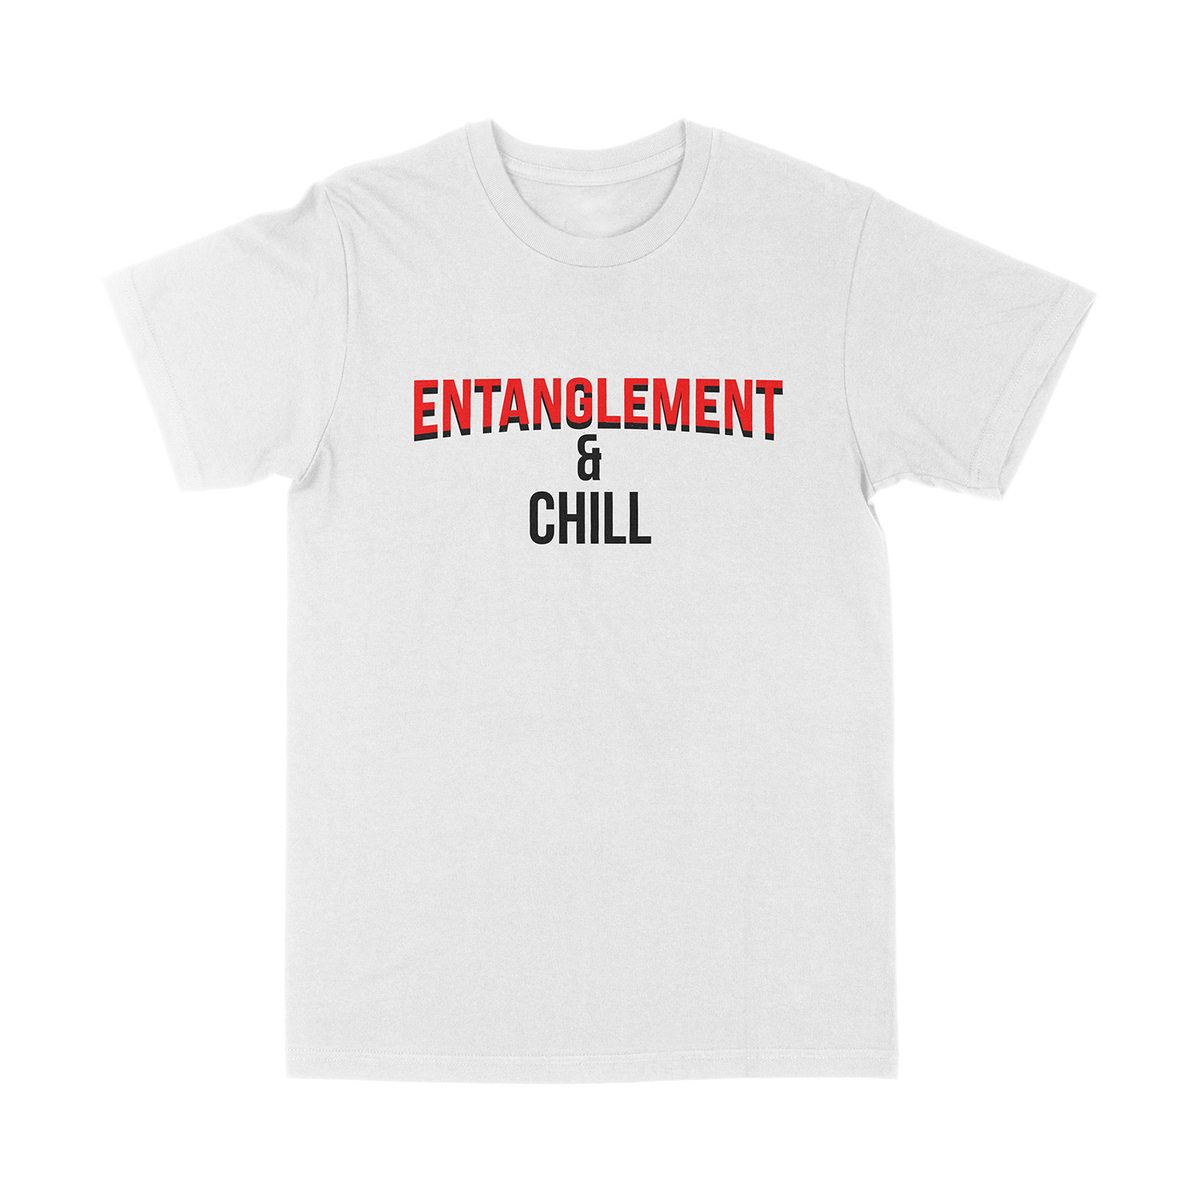 Entanglement & Chill White T-Shirt